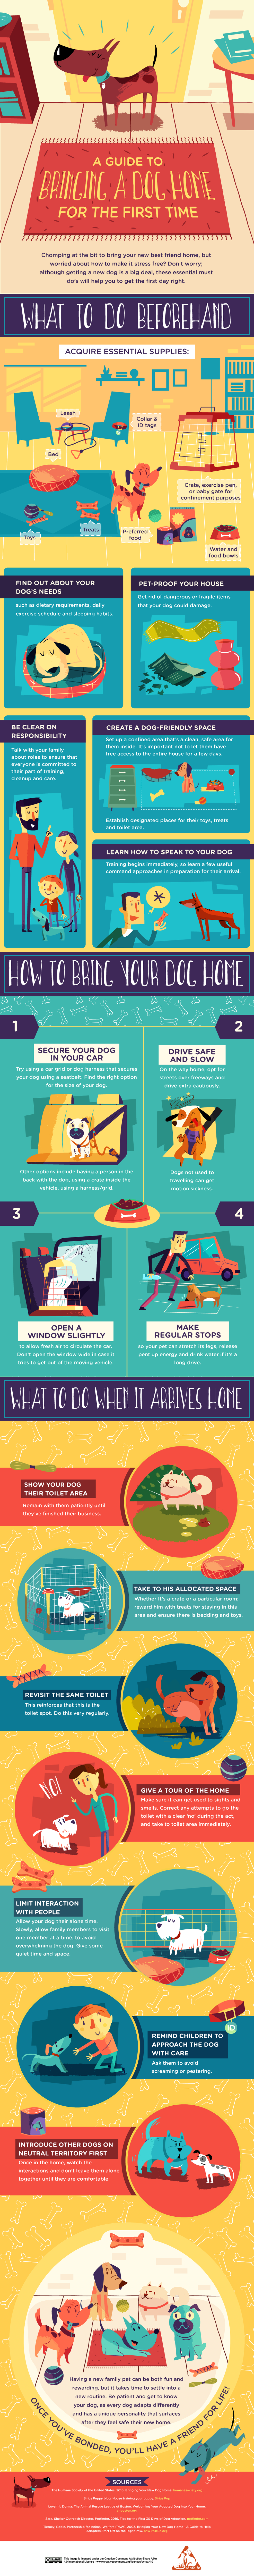 How to Get Your Home Ready for the New Puppy - Infographic